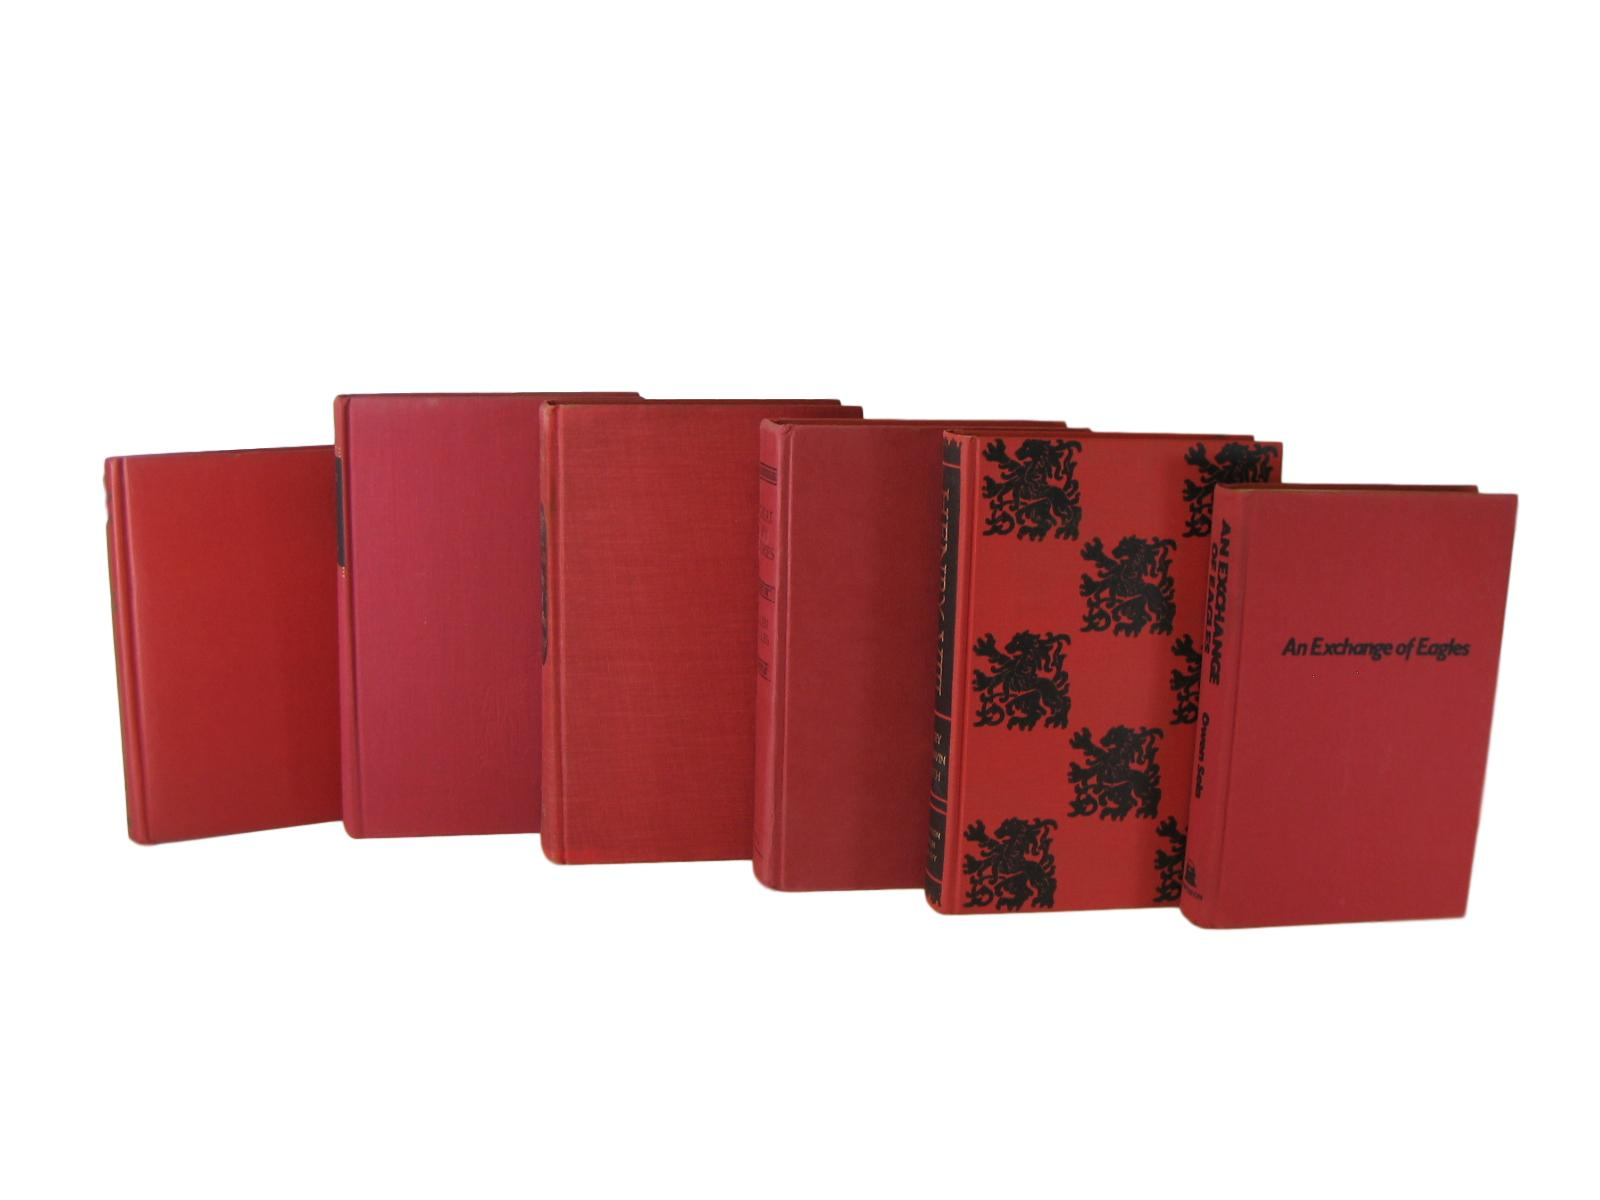 Red Decorative Book Set Perfect for Bookshelf Display, S/6 - Decades of Vintage